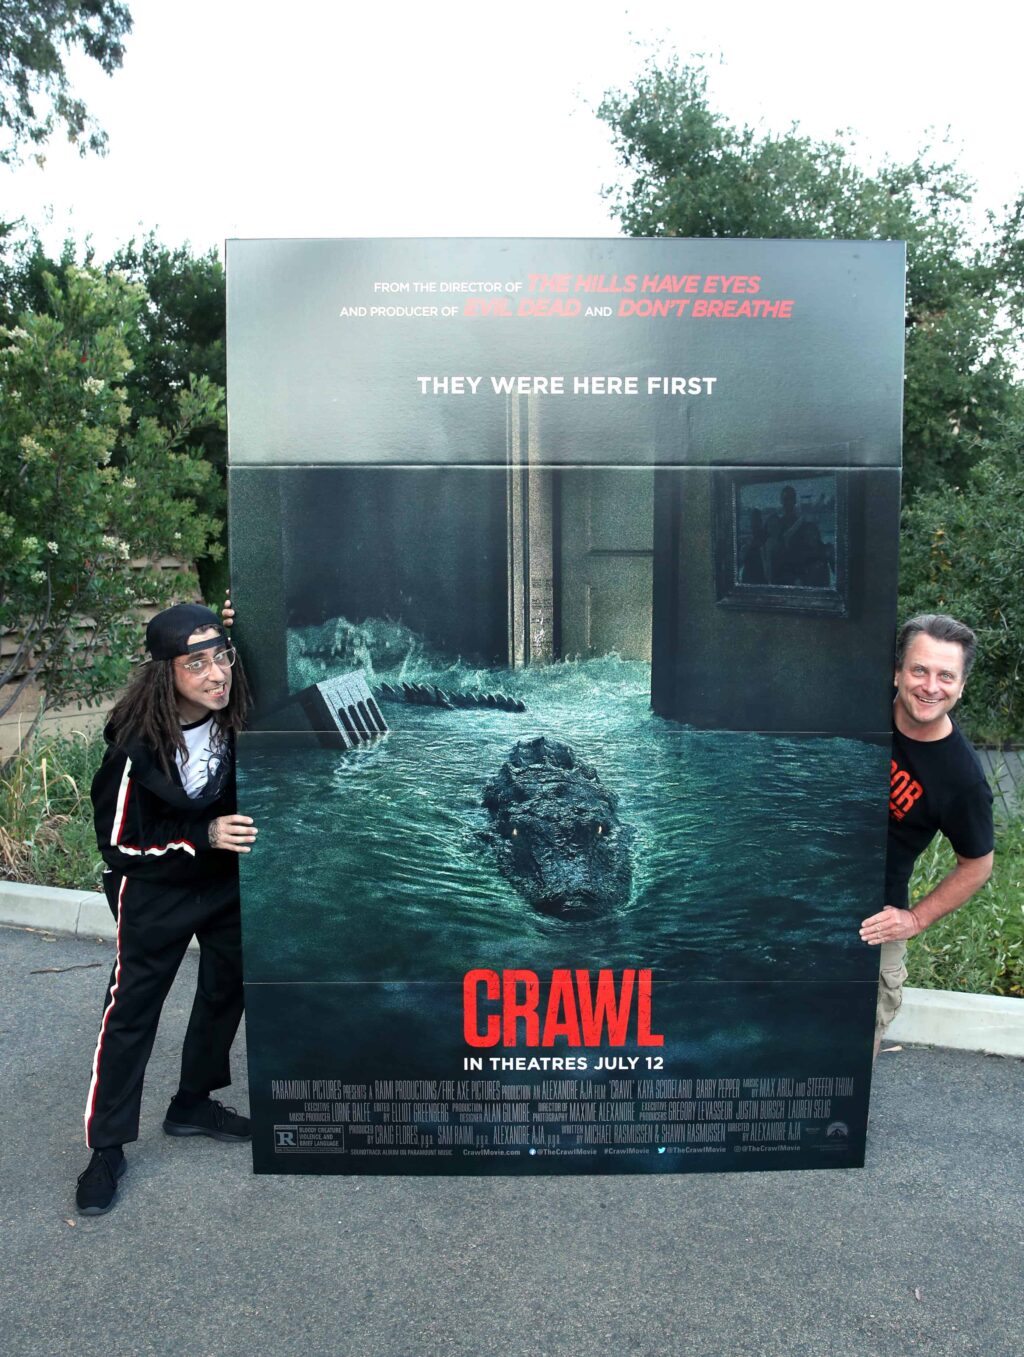 1RMS0179 2019070973615532 1 1024x1357 - Feeding Time! Check Out Images from Press Event for CRAWL at the LA Zoo with Real Alligators